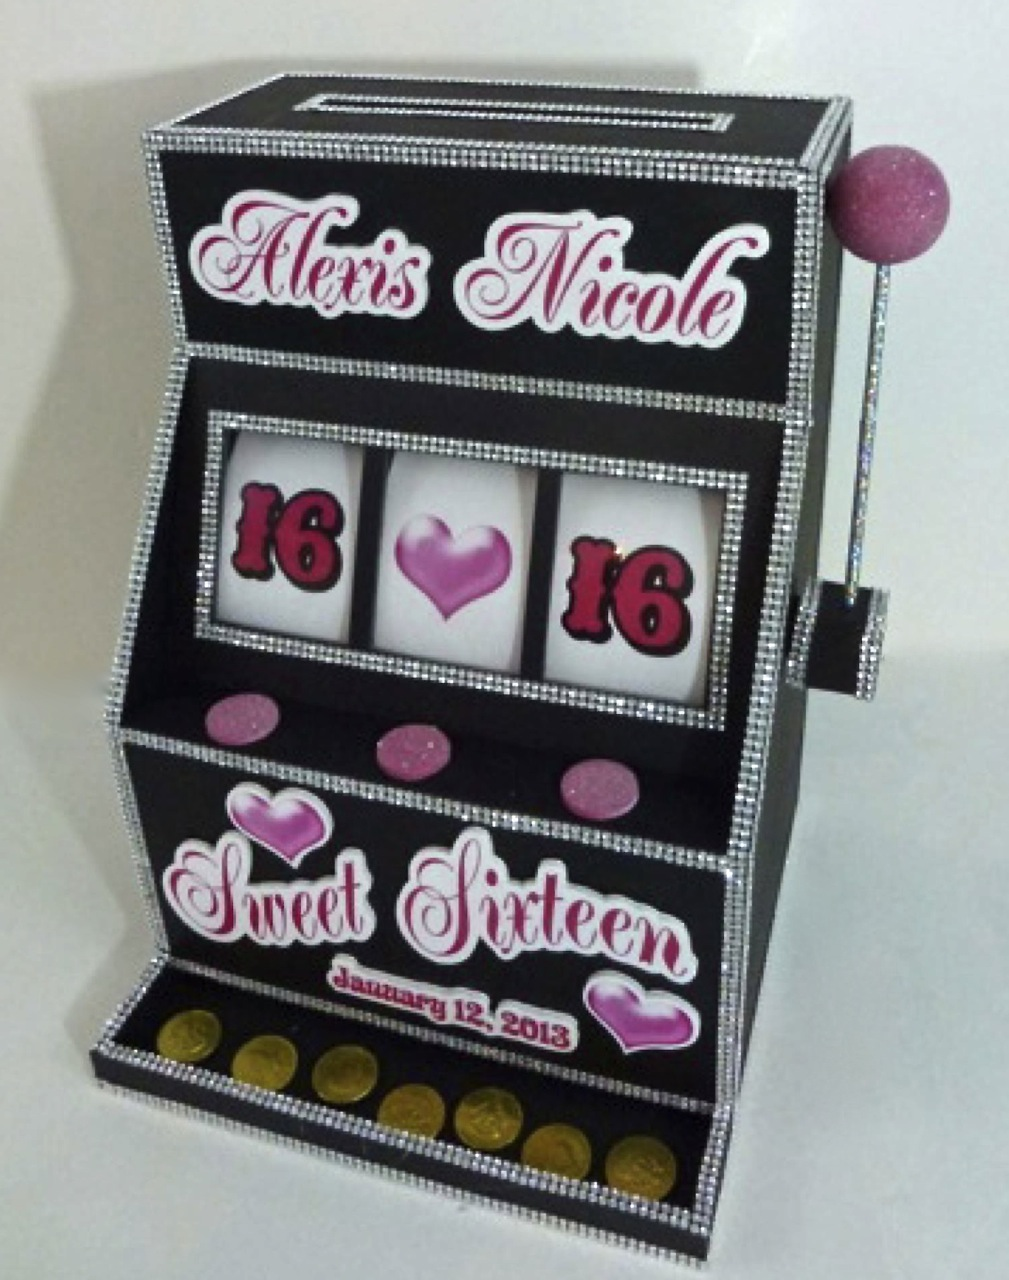 Las vegas slot machine money box